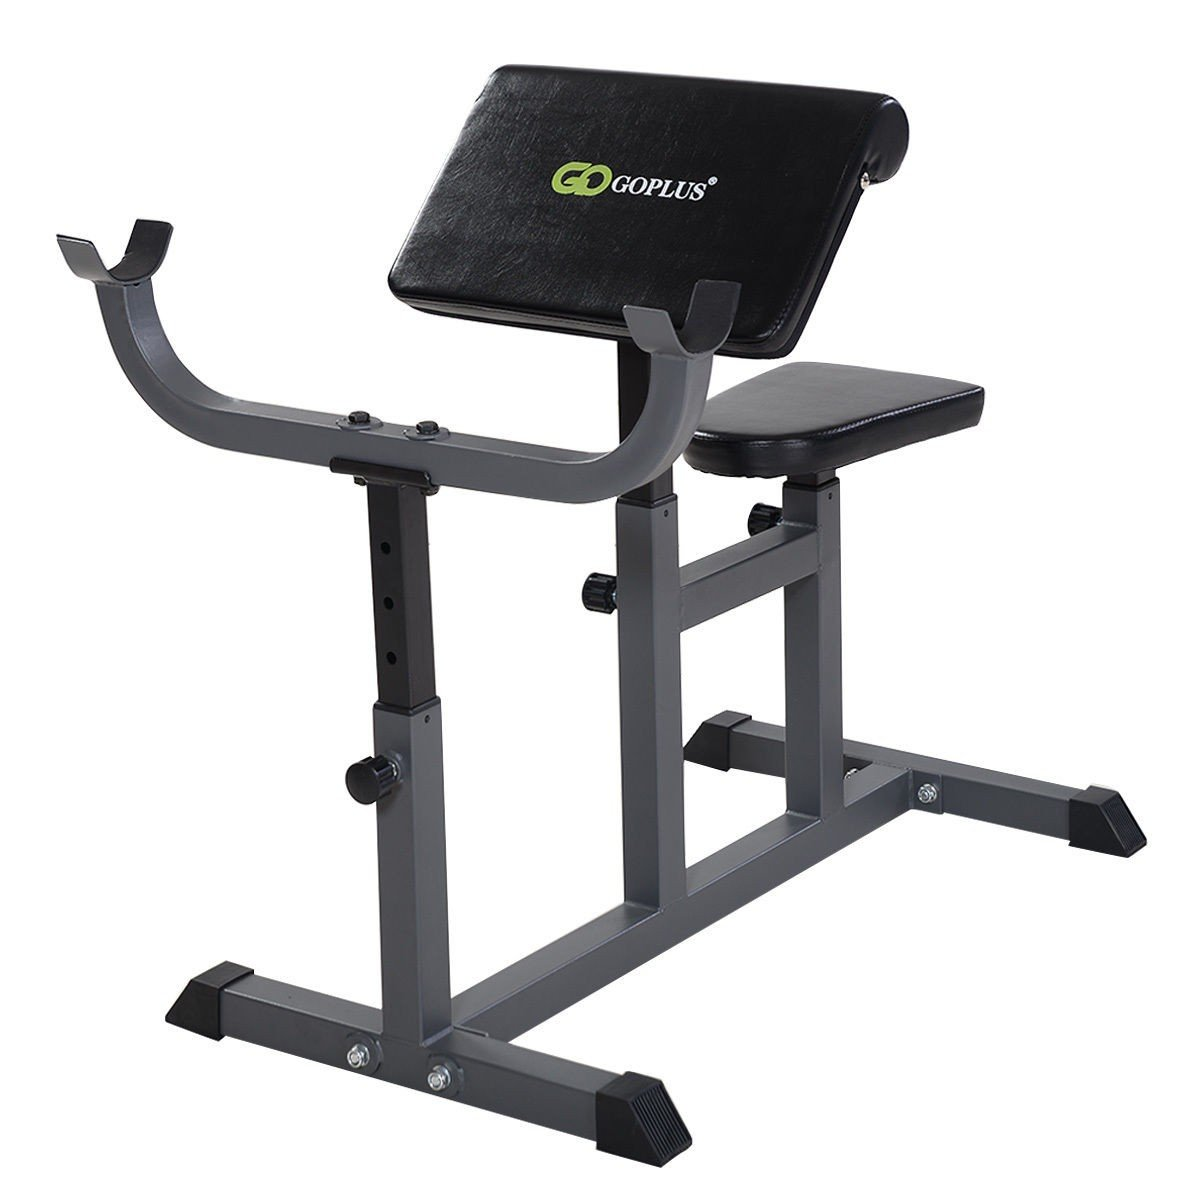 MyEasyShopping Adjustable Commercial Preacher Arm Curl Weight Bench Adjustable Commercial Preacher Arm Curl Weight Bench Dumbbell Biceps Seat